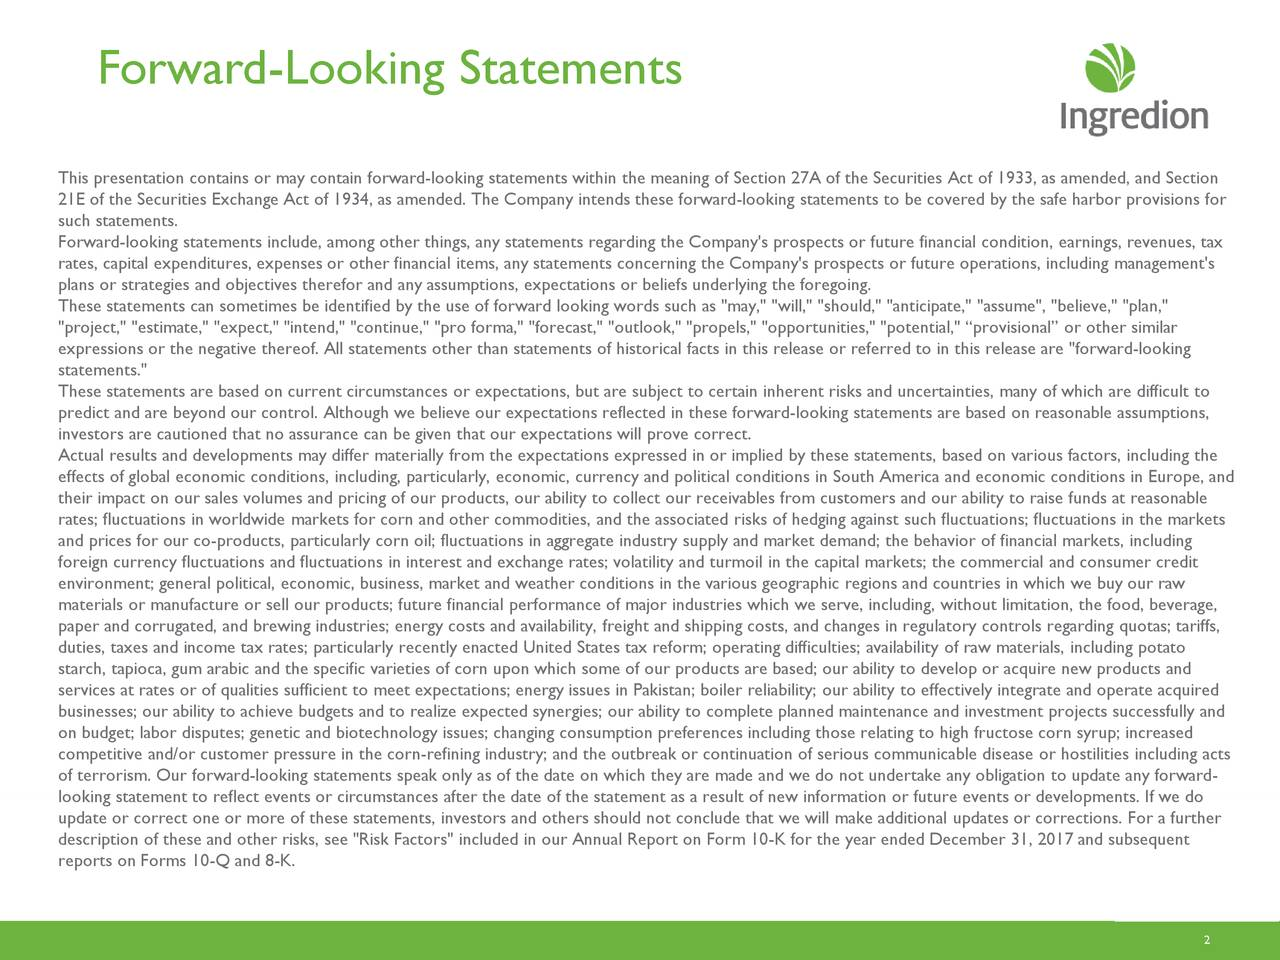 """This presentation contains or may contain forward-looking statements within the meaning of Section 27A of the Securities Act of 1933, as amended, and Secti on 21E of the Securities Exchange Act of 1934, as amended. The Company intends these forward -looking statements to be covered by the safe harbor provisions for such statements. Forward-looking statements include, among other things, any statements regarding the Company's prospects or future financial con dition, earnings, revenues, tax rates, capital expenditures, expenses or other financial items, any statements concerning the Company's prospects or future o perations, including management's plans or strategies and objectives therefor and any assumptions, expectations or beliefs underlying the foregoing. These statements can sometimes be identified by the use of forward looking words such as """"may,"""" """"will,"""" """"should,"""" """"anticipate,"""" """"assume"""", """"believe,"""" """"plan,"""" """"project,"""" """"estimate,"""" """"expect,"""" """"intend,"""" """"continue,"""" """"pro forma,"""" """"forecast,"""" """"outlook,"""" """"propels,"""" """"opportunities,"""" """"poten tial,"""" """"provisional"""" or other similar expressions or the negative thereof. All statements other than statements of historical facts in this release or referred to in this release are """"forward-looking statements."""" These statements are based on current circumstances or expectations, but are subject to certain inherent risks and uncertaint ies, many of which are difficult to predict and are beyond our control. Although we believe our expectations reflected in these forward -looking statements are based on reasonable assumptions, investors are cautioned that no assurance can be given that our expectations will prove correct. Actual results and developments may differ materially from the expectations expressed in or implied by these statements, based o n various factors, including the effects of global economic conditions, including, particularly, economic, currency and political conditions in South Americaand economic conditions in Europ"""